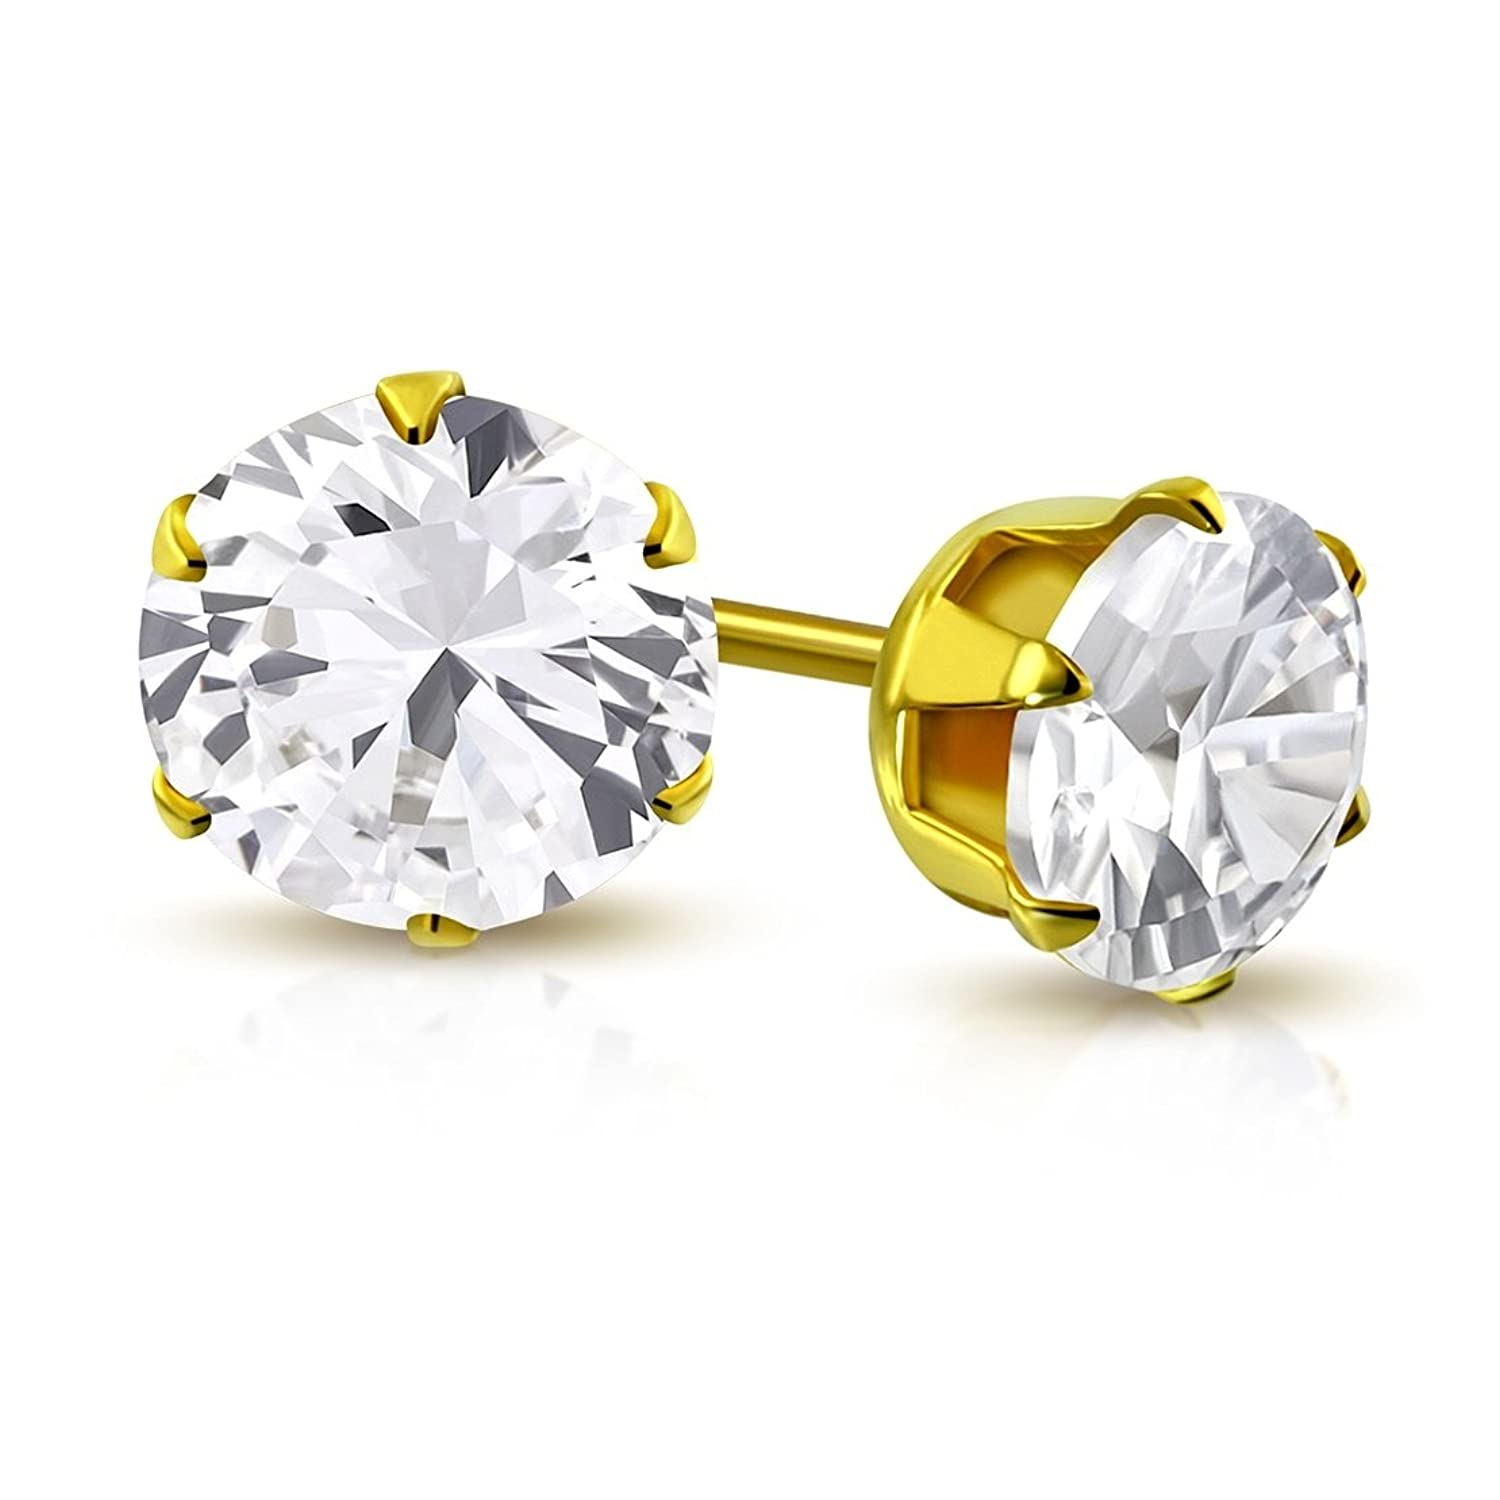 Stainless Steel Gold Color Plated Prong-Set Round Circle Stud Earrings with Clear CZ (pair)